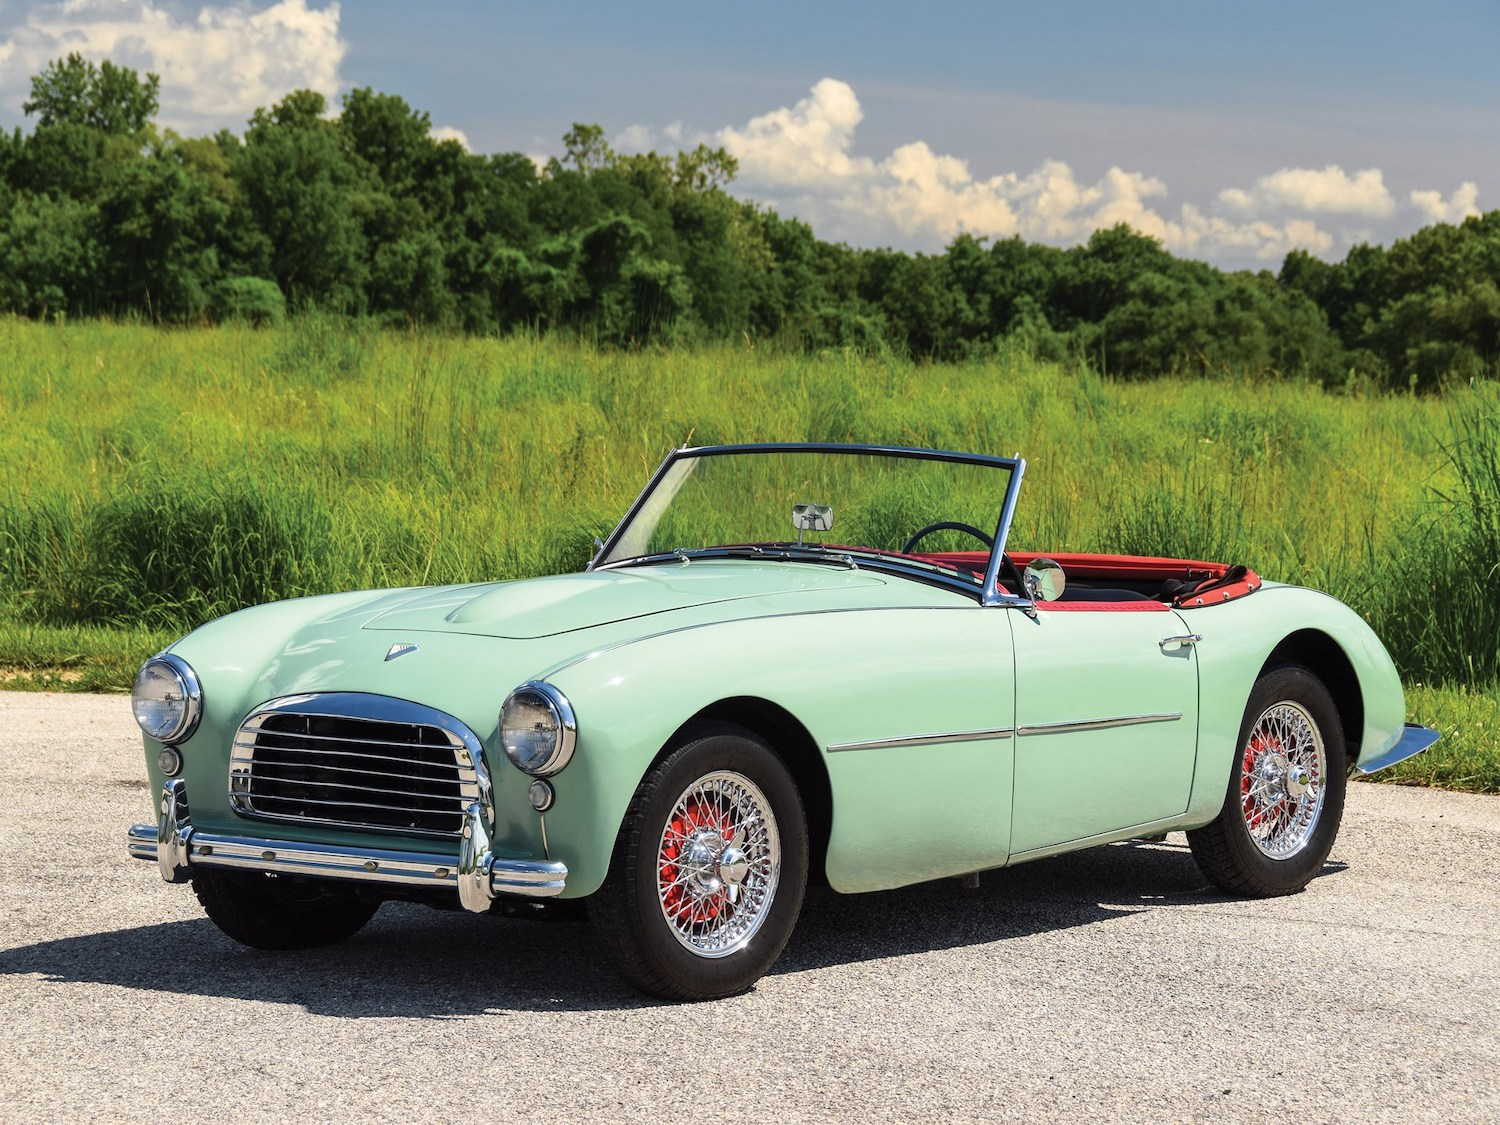 1955 swallow doretti roadster front three-quarter